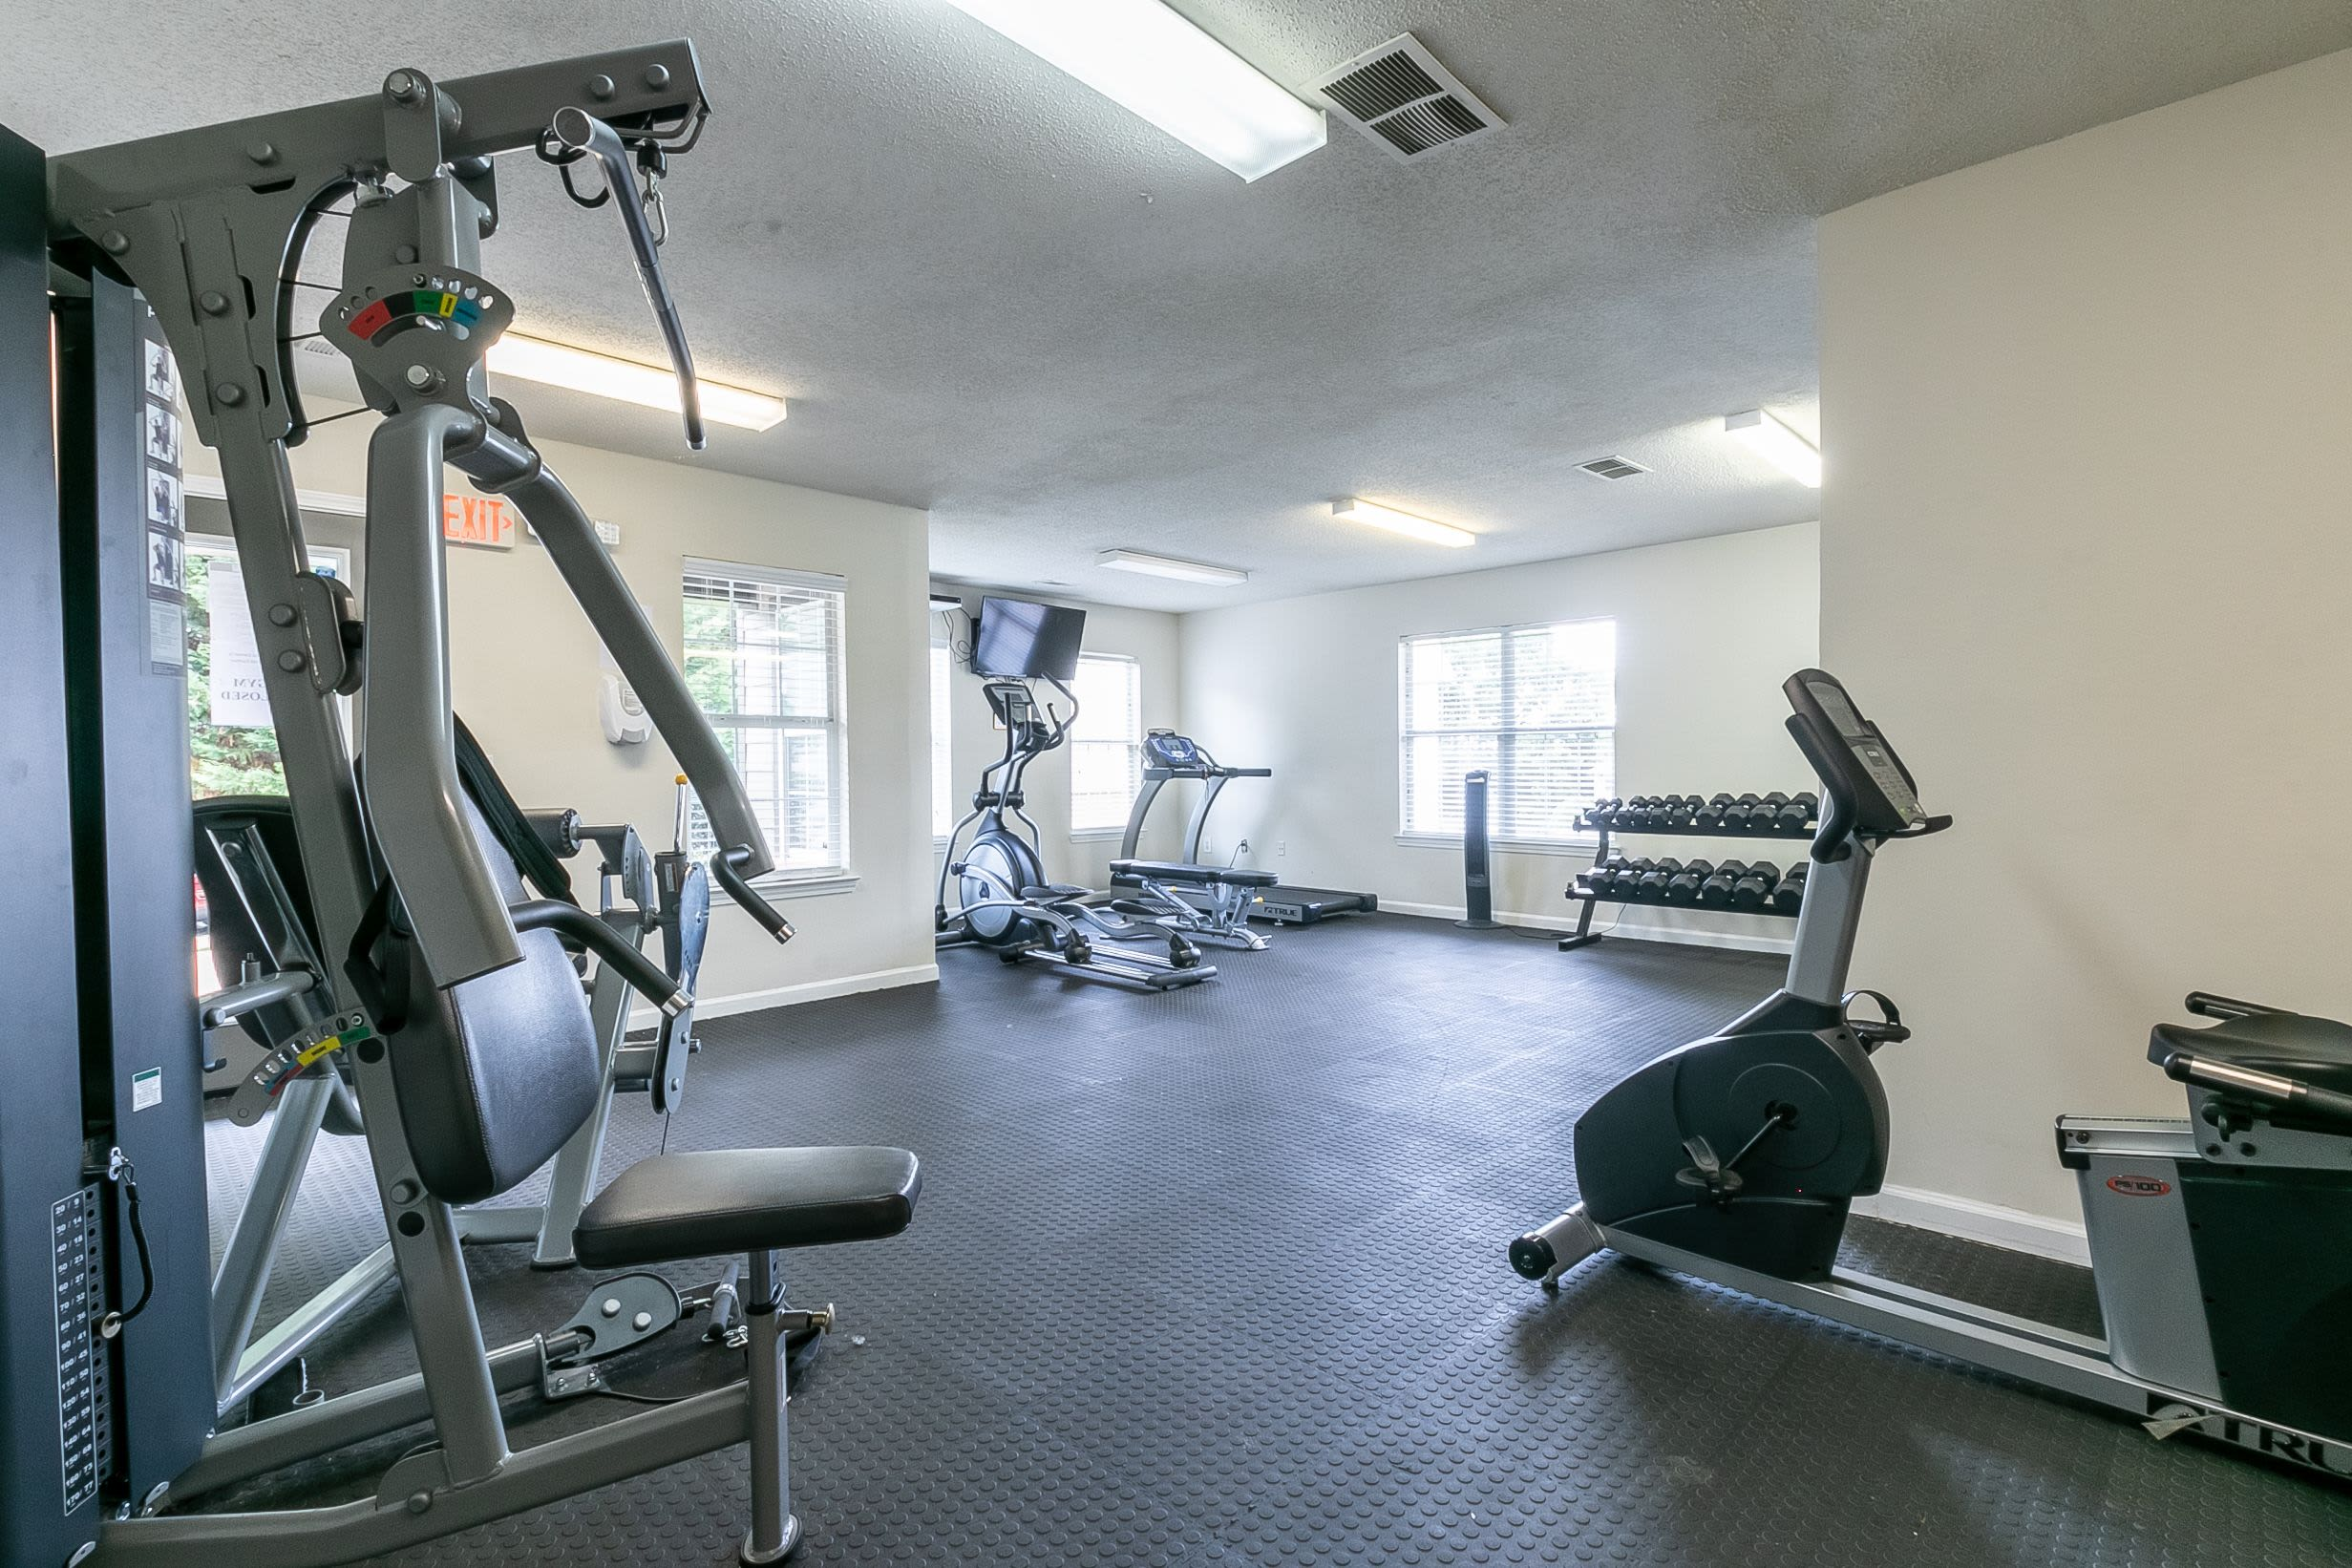 Fitness center at The Square at Lawrenceville in Lawrenceville, Georgia